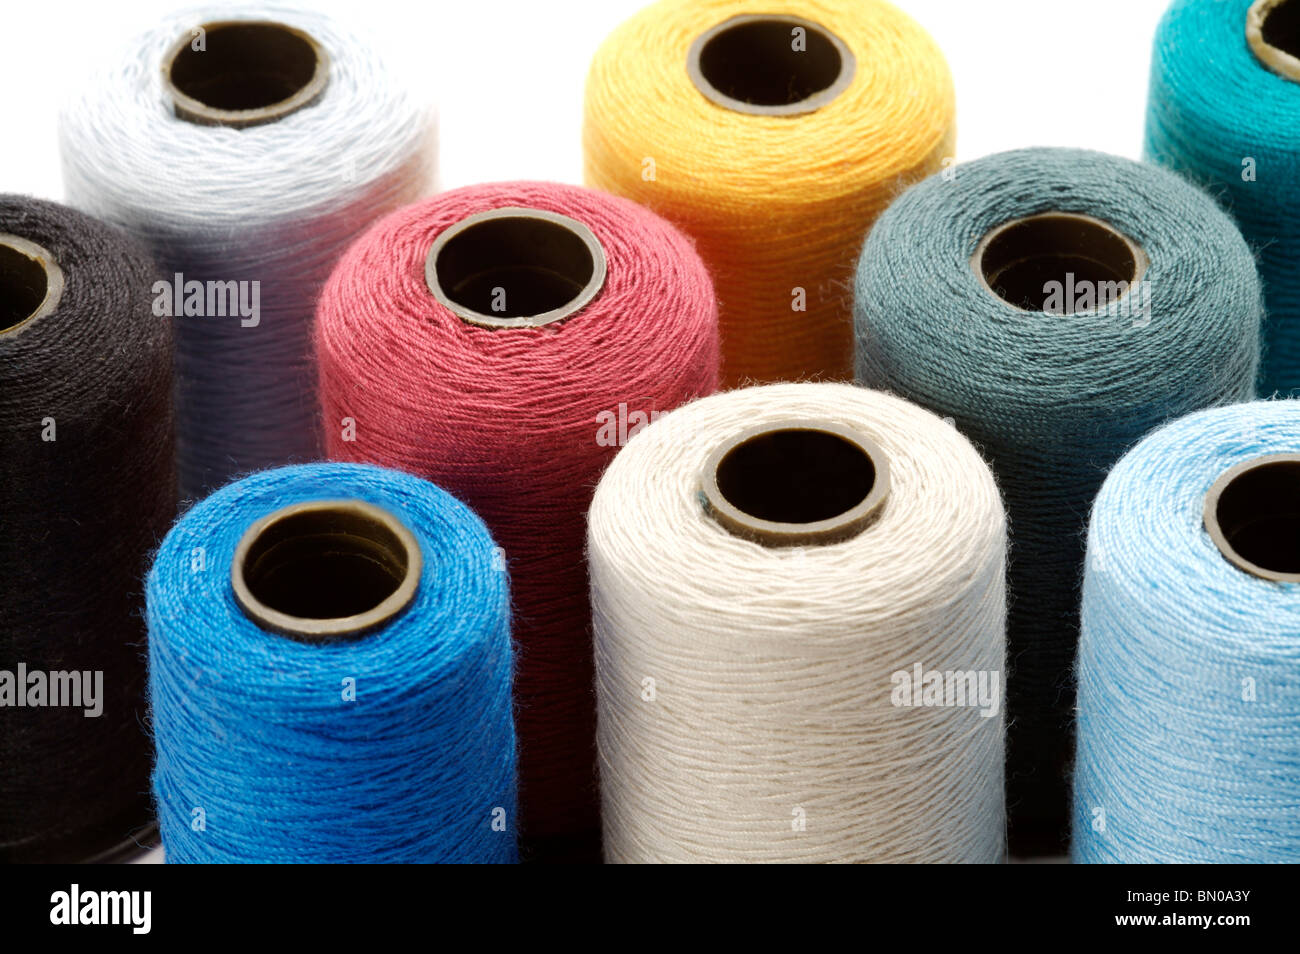 Spools of thread, full frame - Stock Image